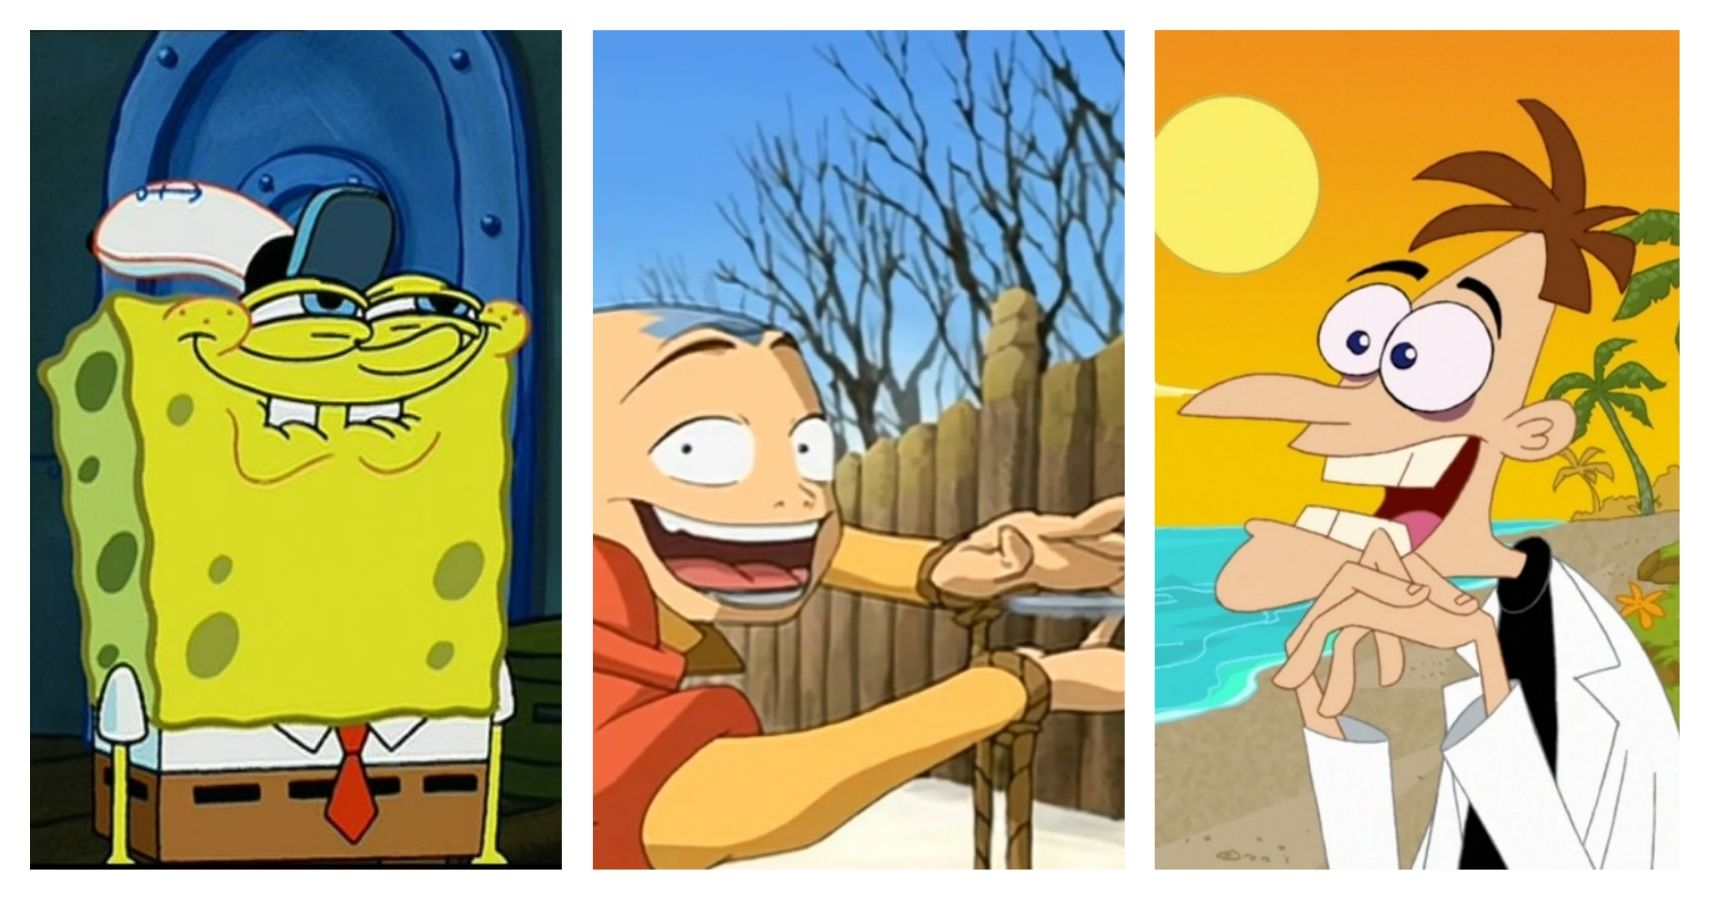 15 Best Kid S Cartoons Of The 2000s Ranked According To Imdb